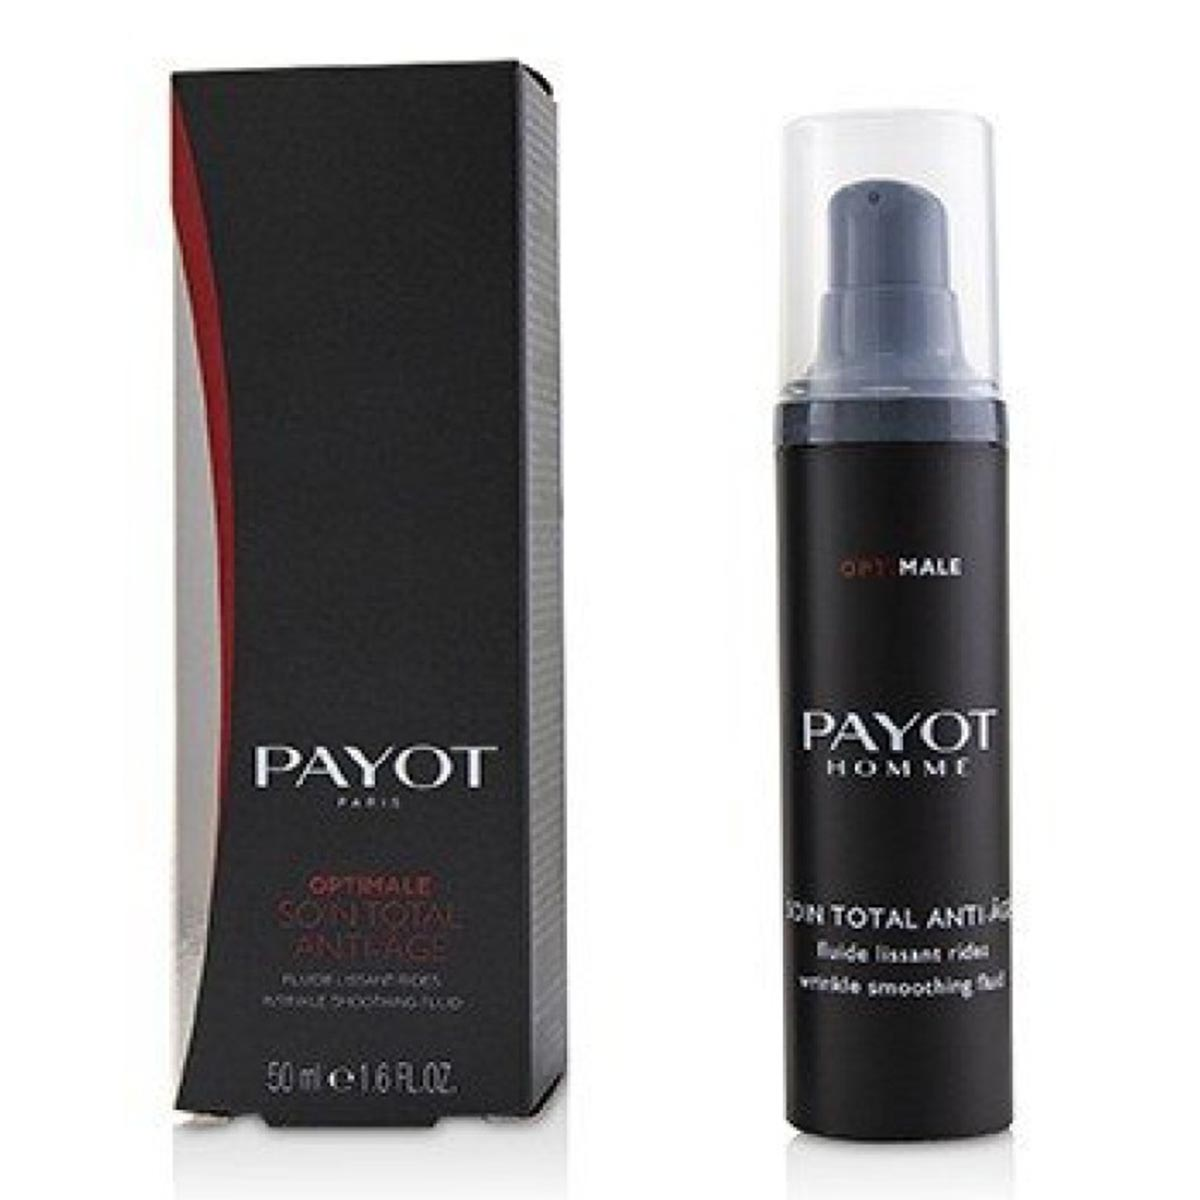 Payot homme optimale soin total anti age creme 50ml